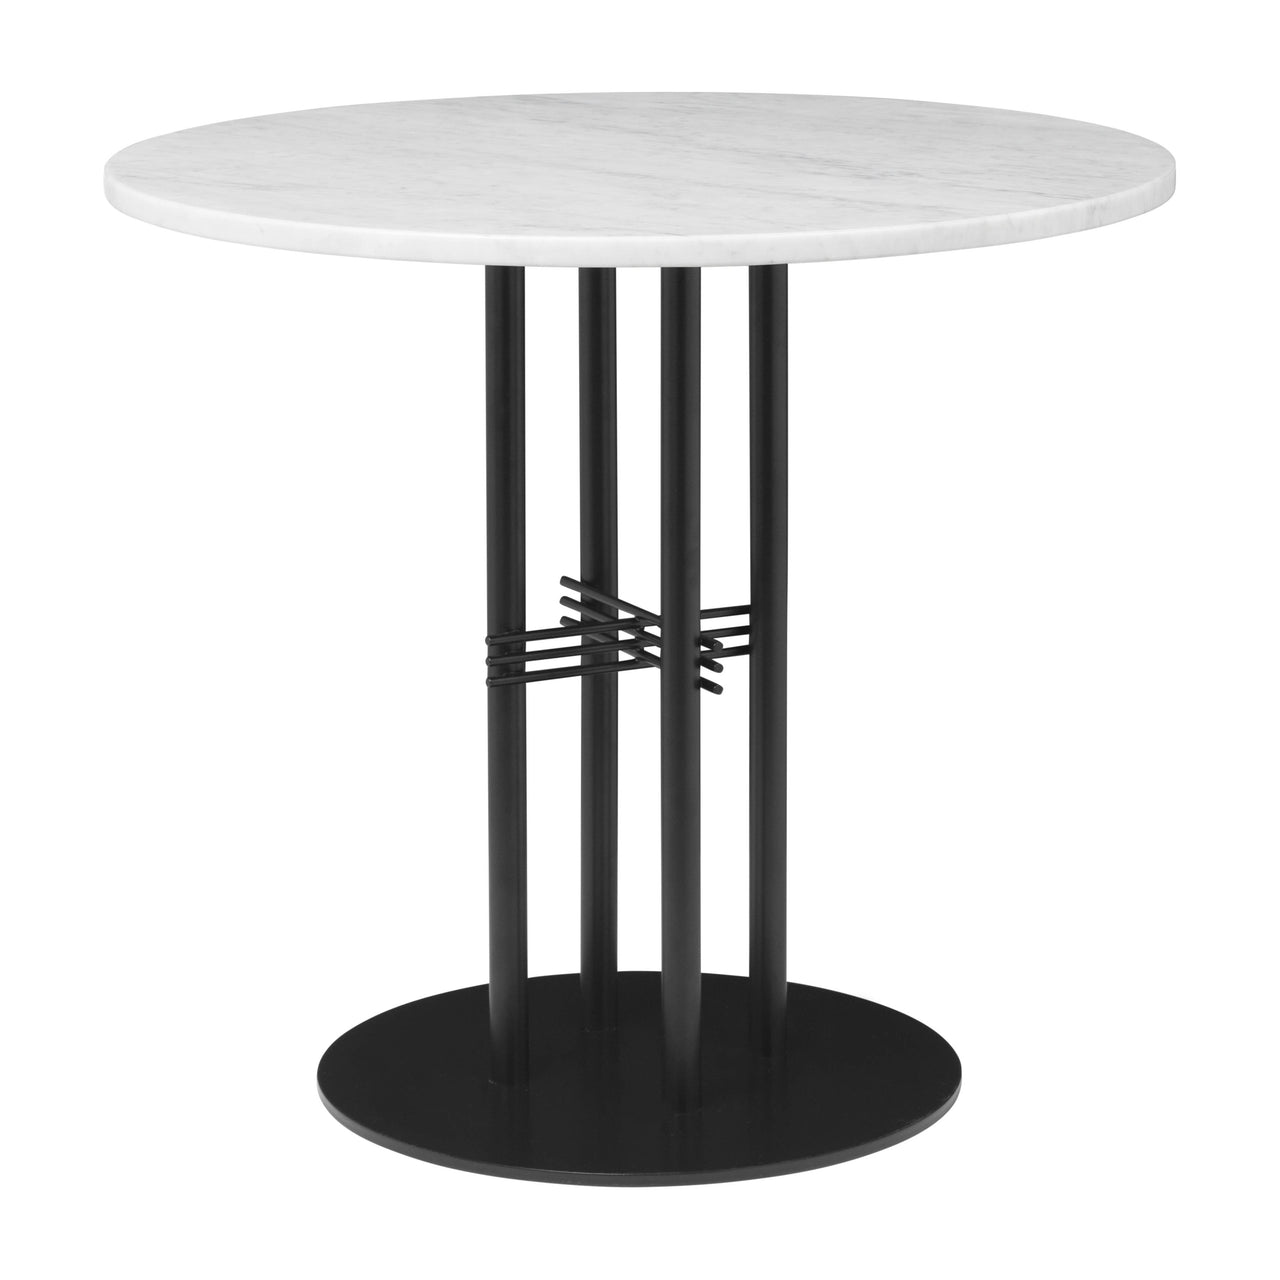 TS Column Dining Table: Small + Black Base + White Carrara Marble